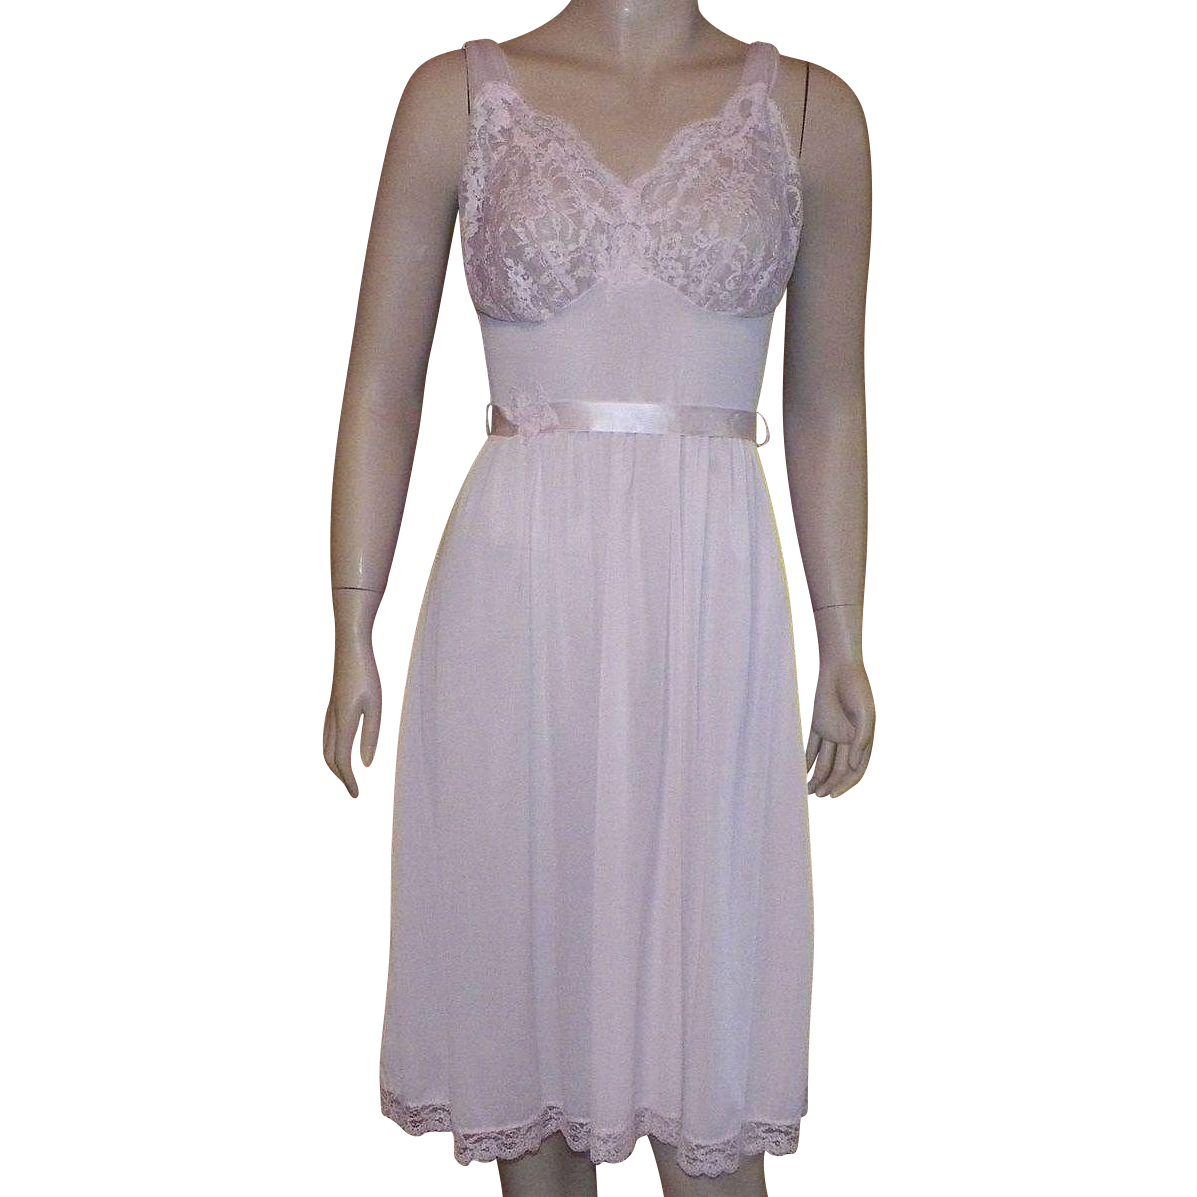 Vintage Pink Flirty Nylon and Lace Short Nightgown Negligee